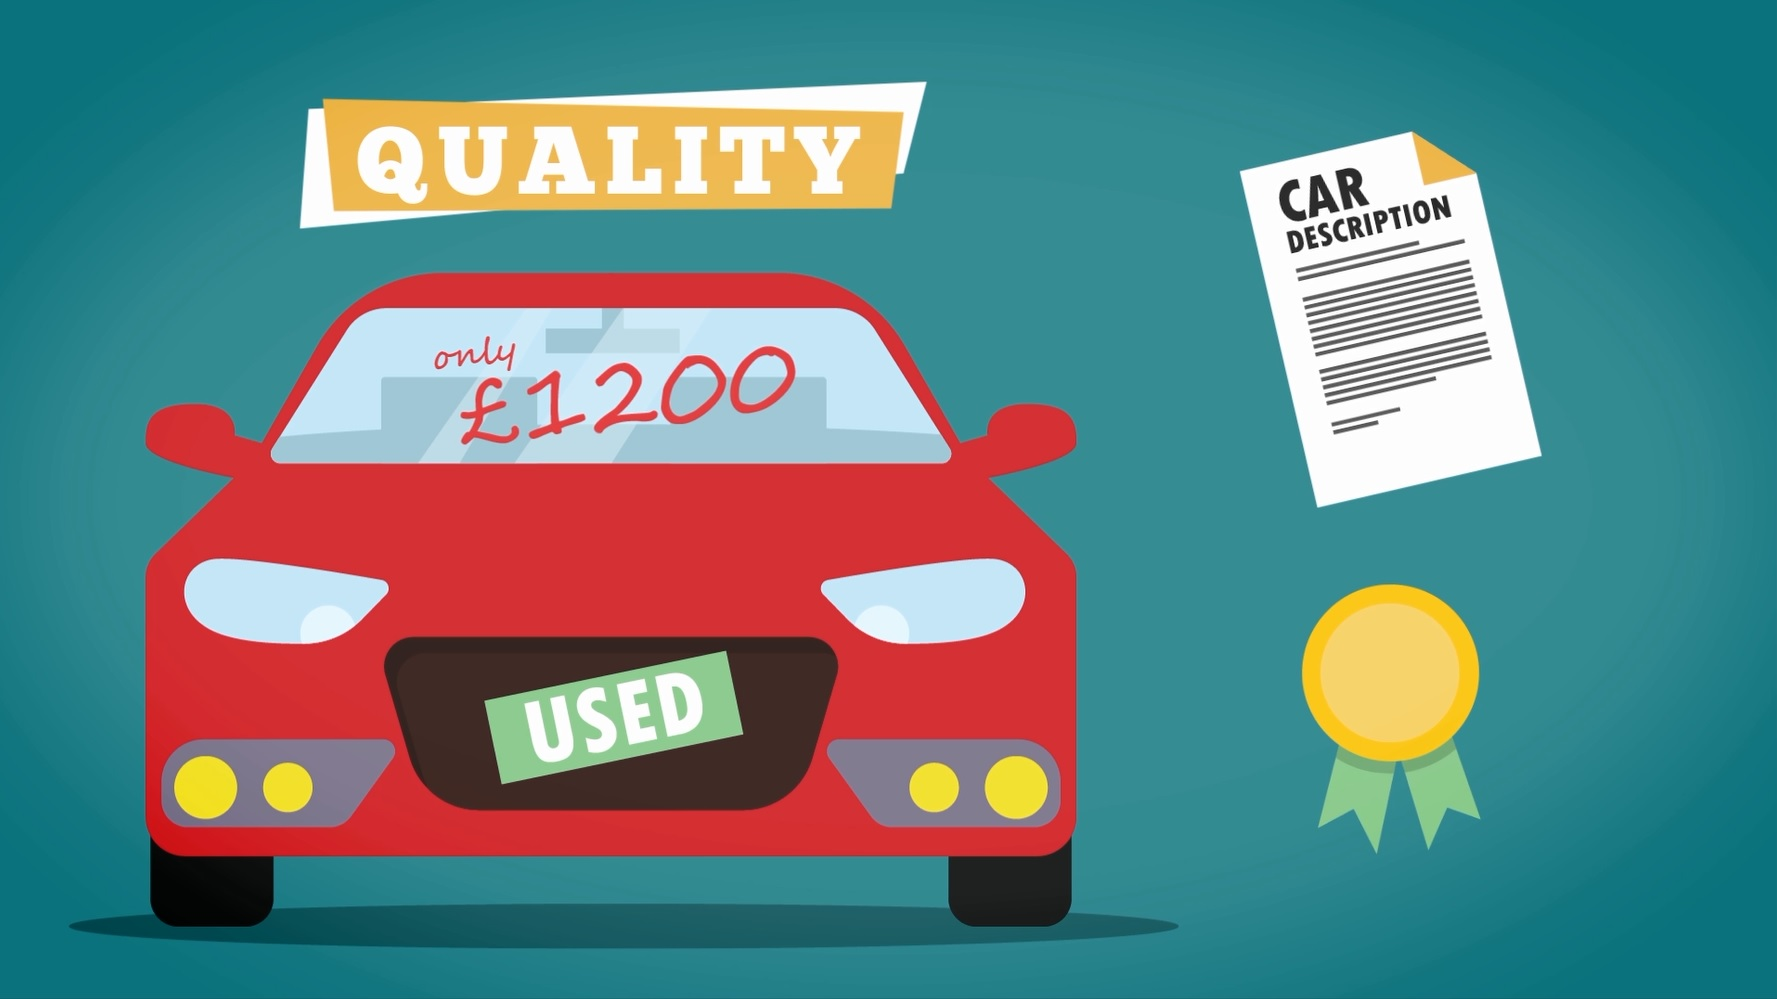 Business Companion publish consumer rights video guide for used car ...